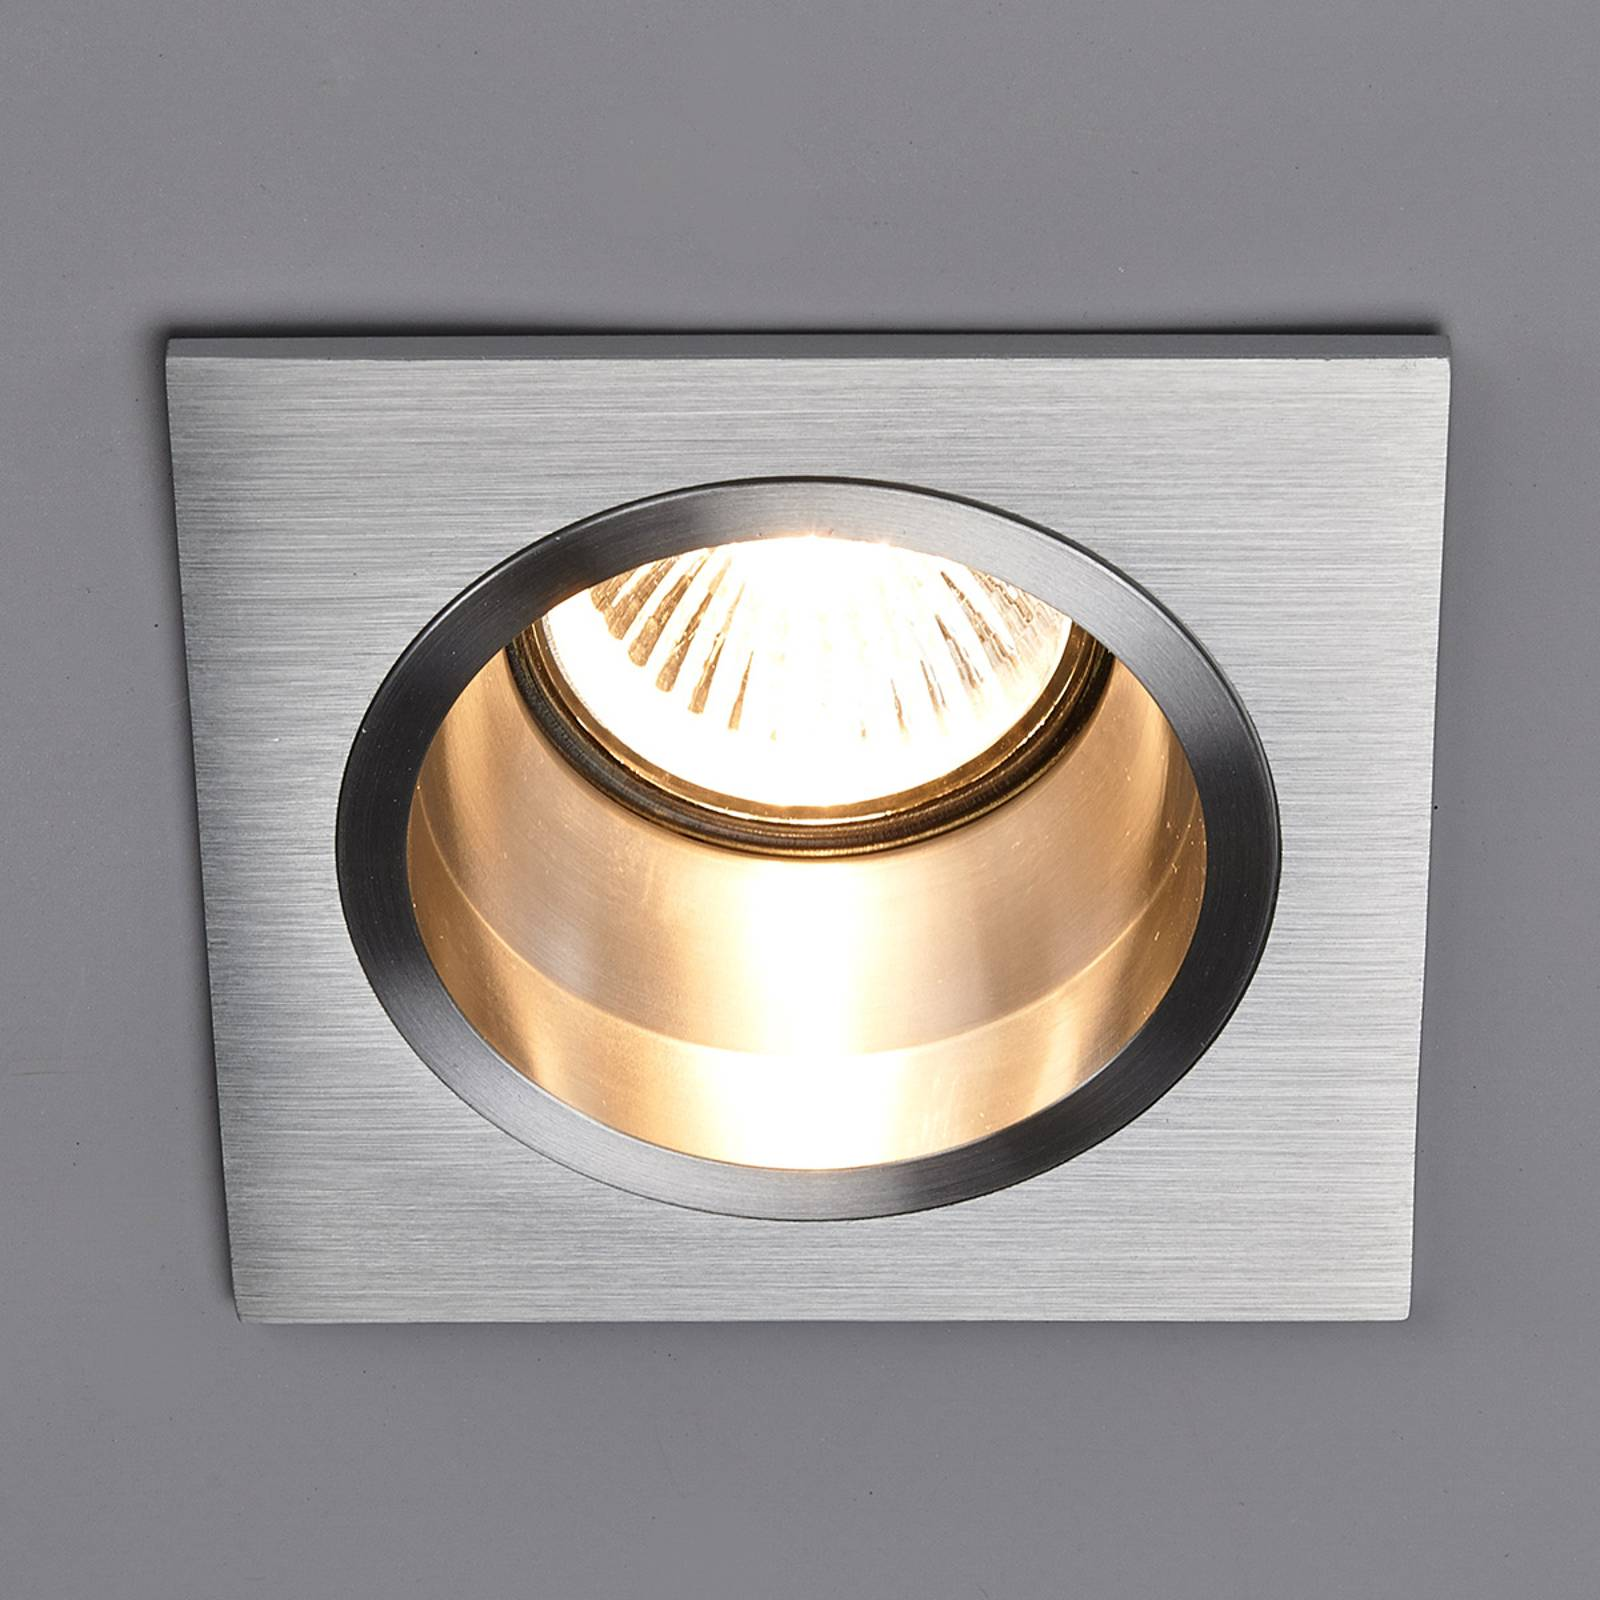 High voltage recessed light Soley, square from Lampenwelt.com